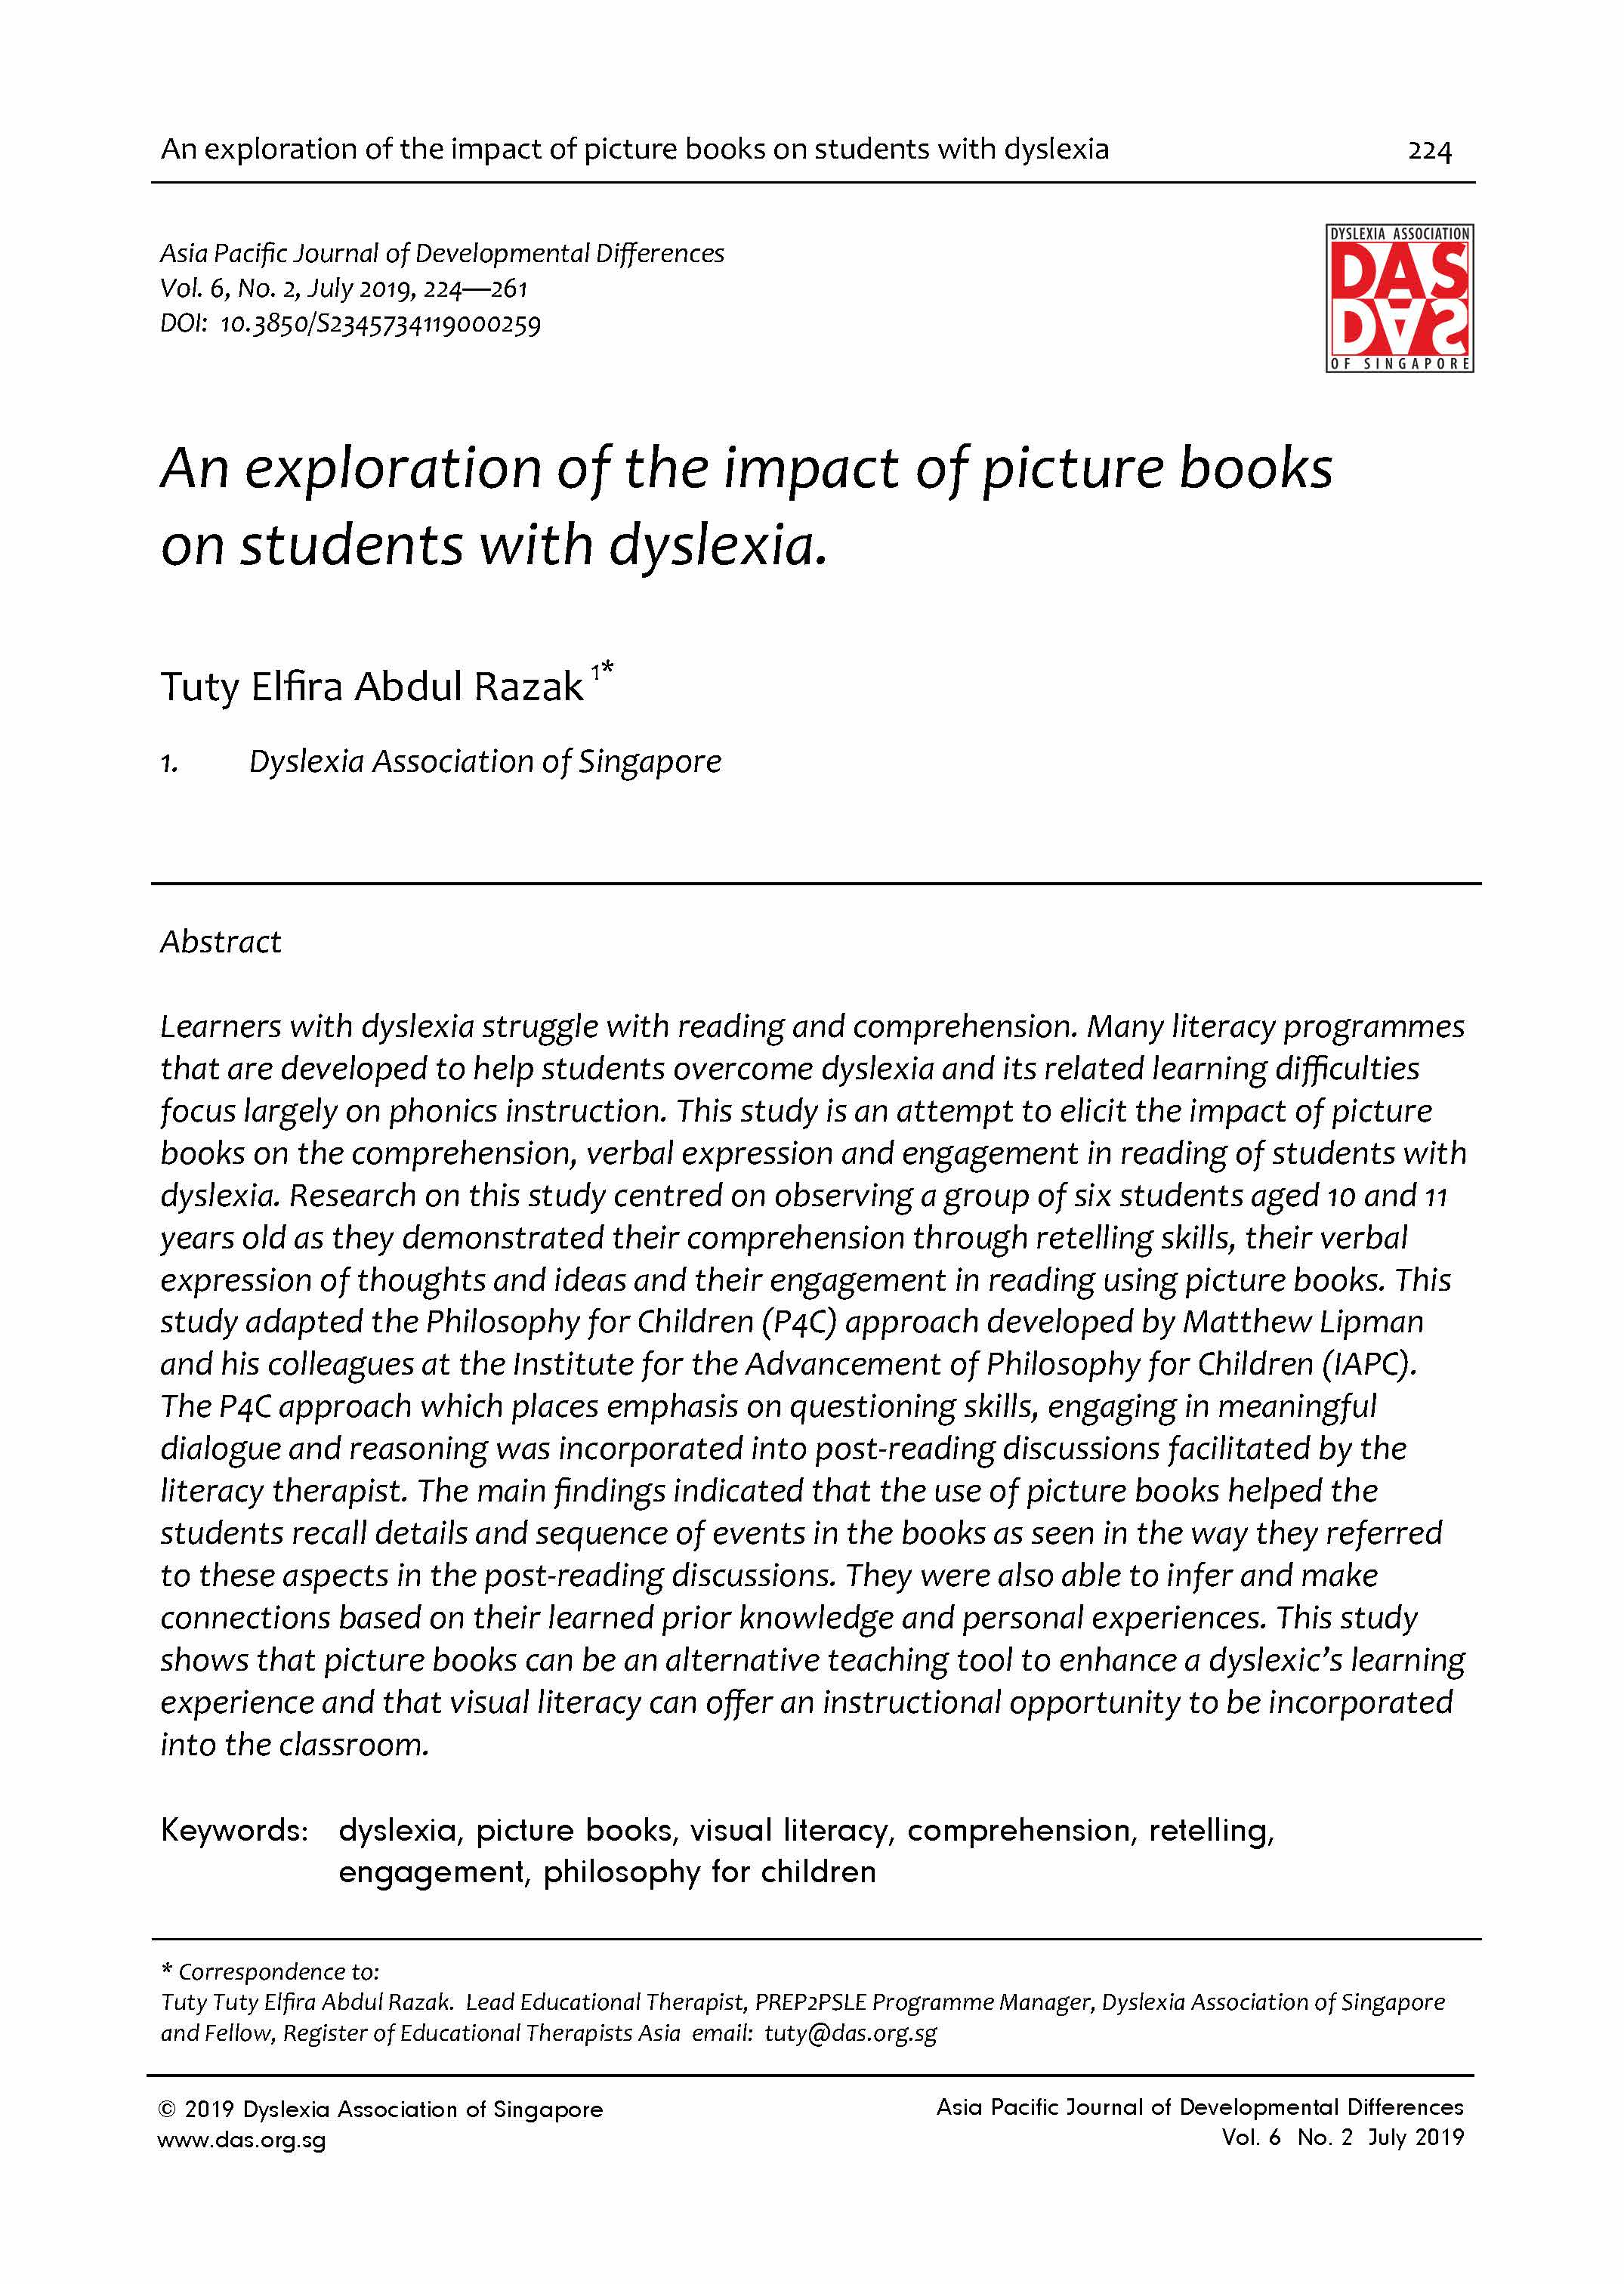 4. An exploration of the impact of picture books on students with dyslexia.